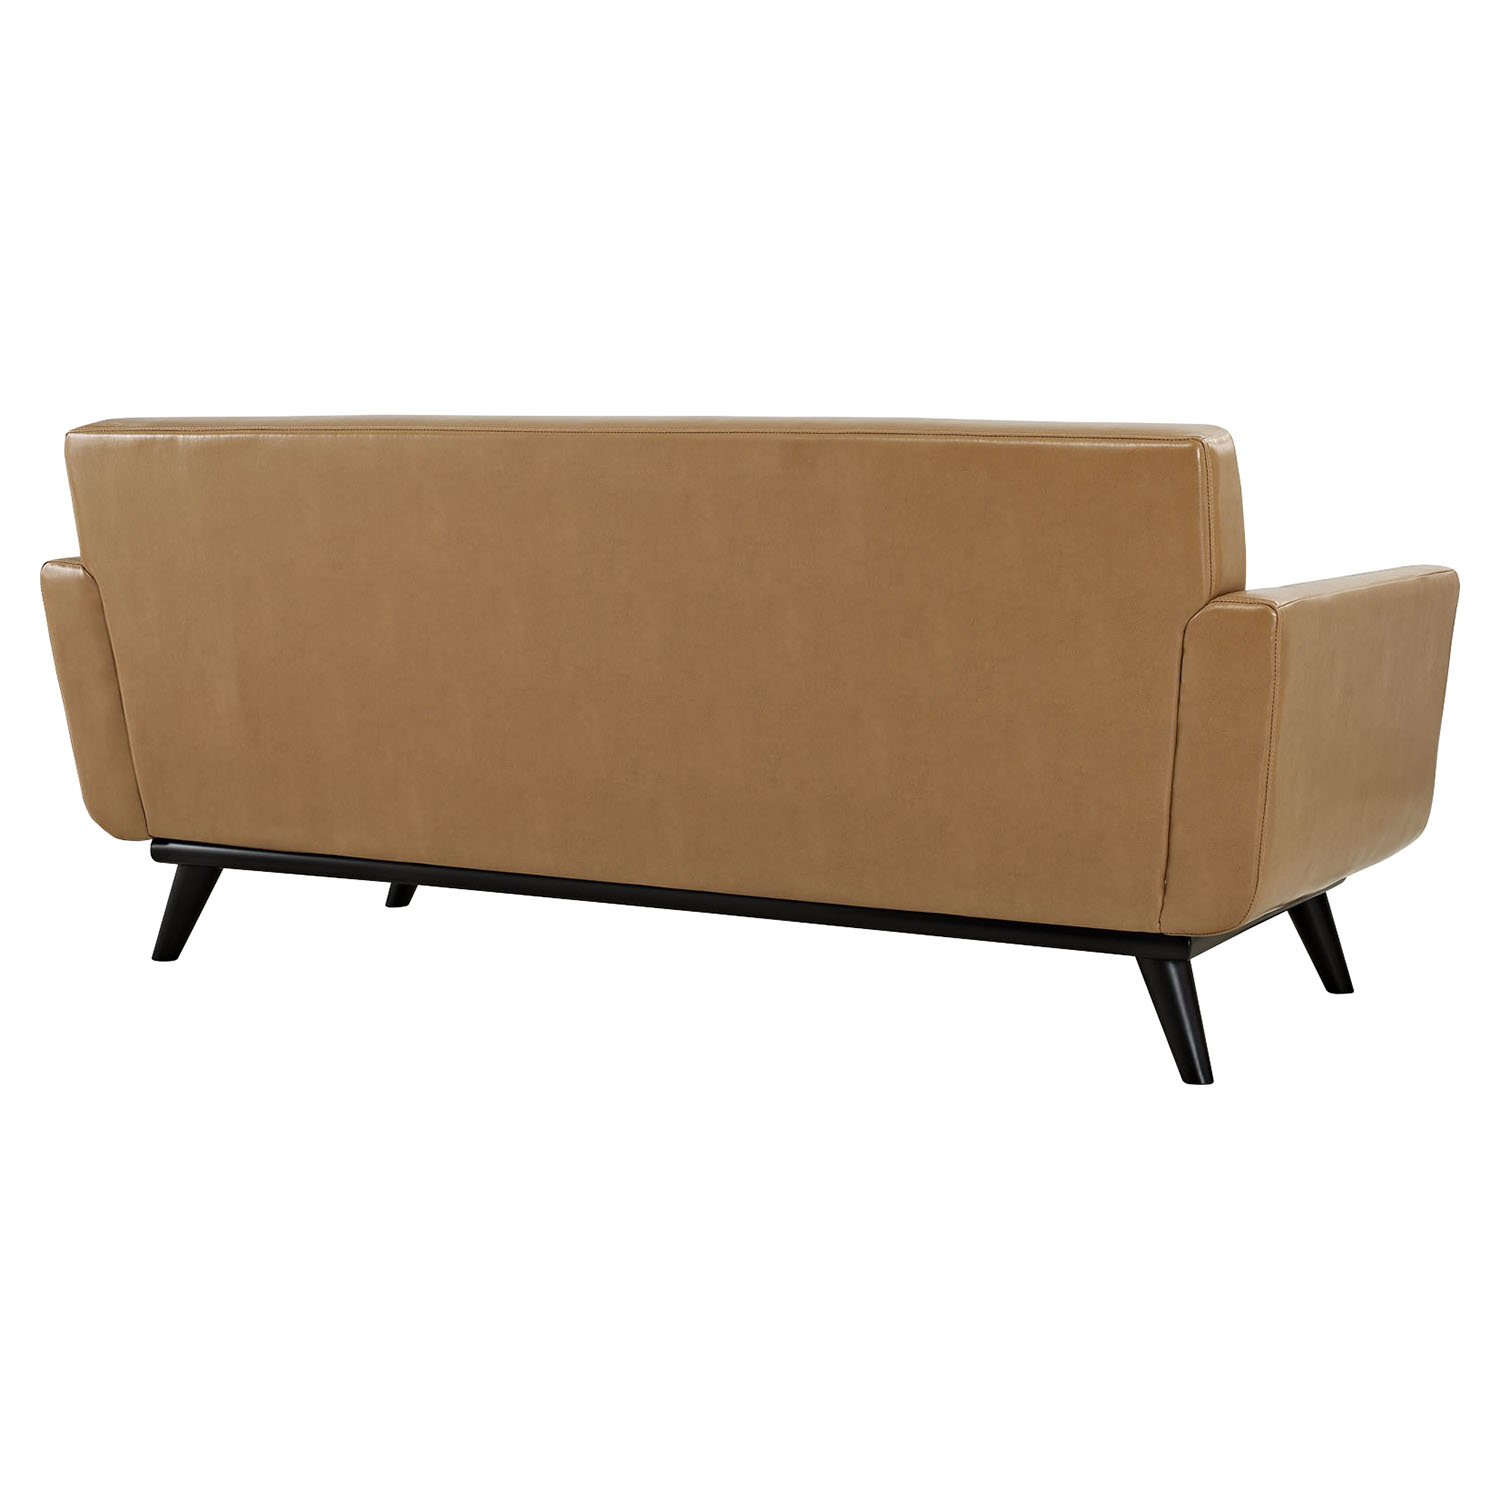 Engage Bonded Leather Loveseat Tufted Tan Dcg Stores